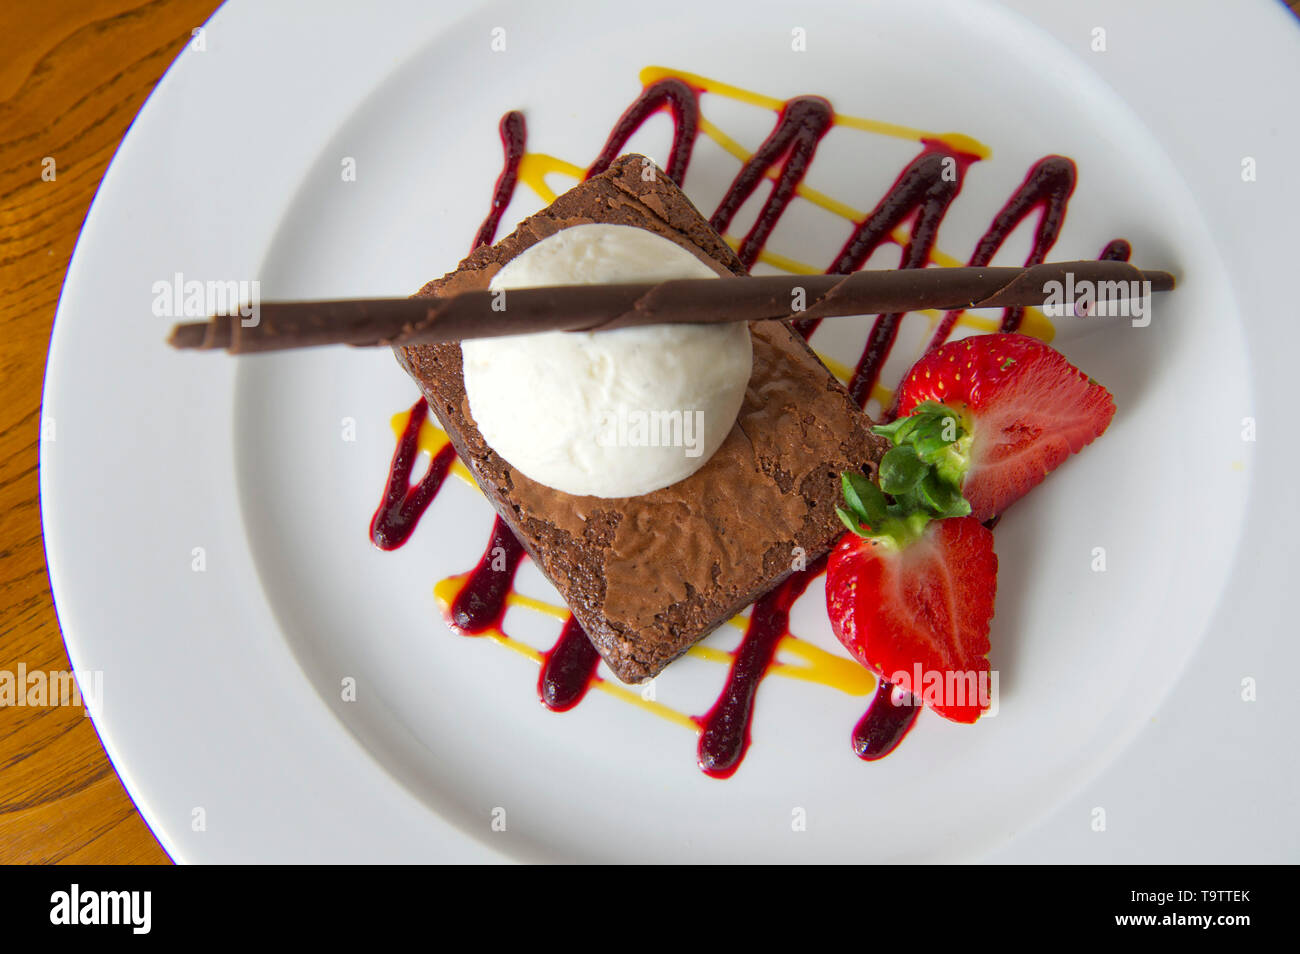 Chocolate  brownie with strawberries and ice-cream - Stock Image